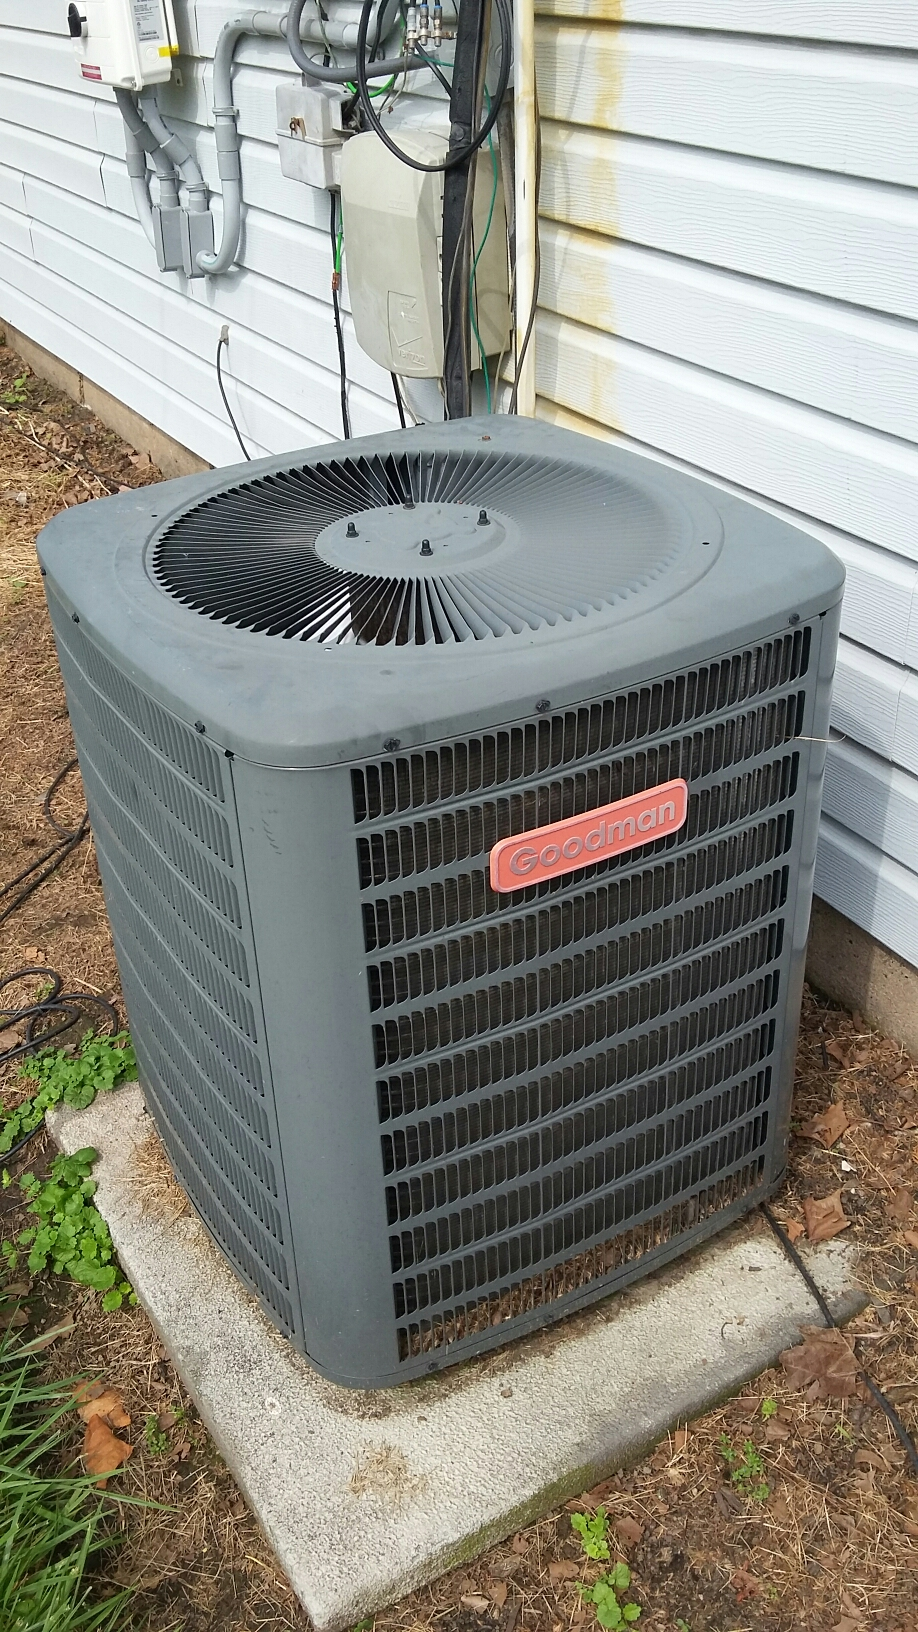 Yardley, PA - Performed a ac maintenance on a Goodman Gsc1302 split system.